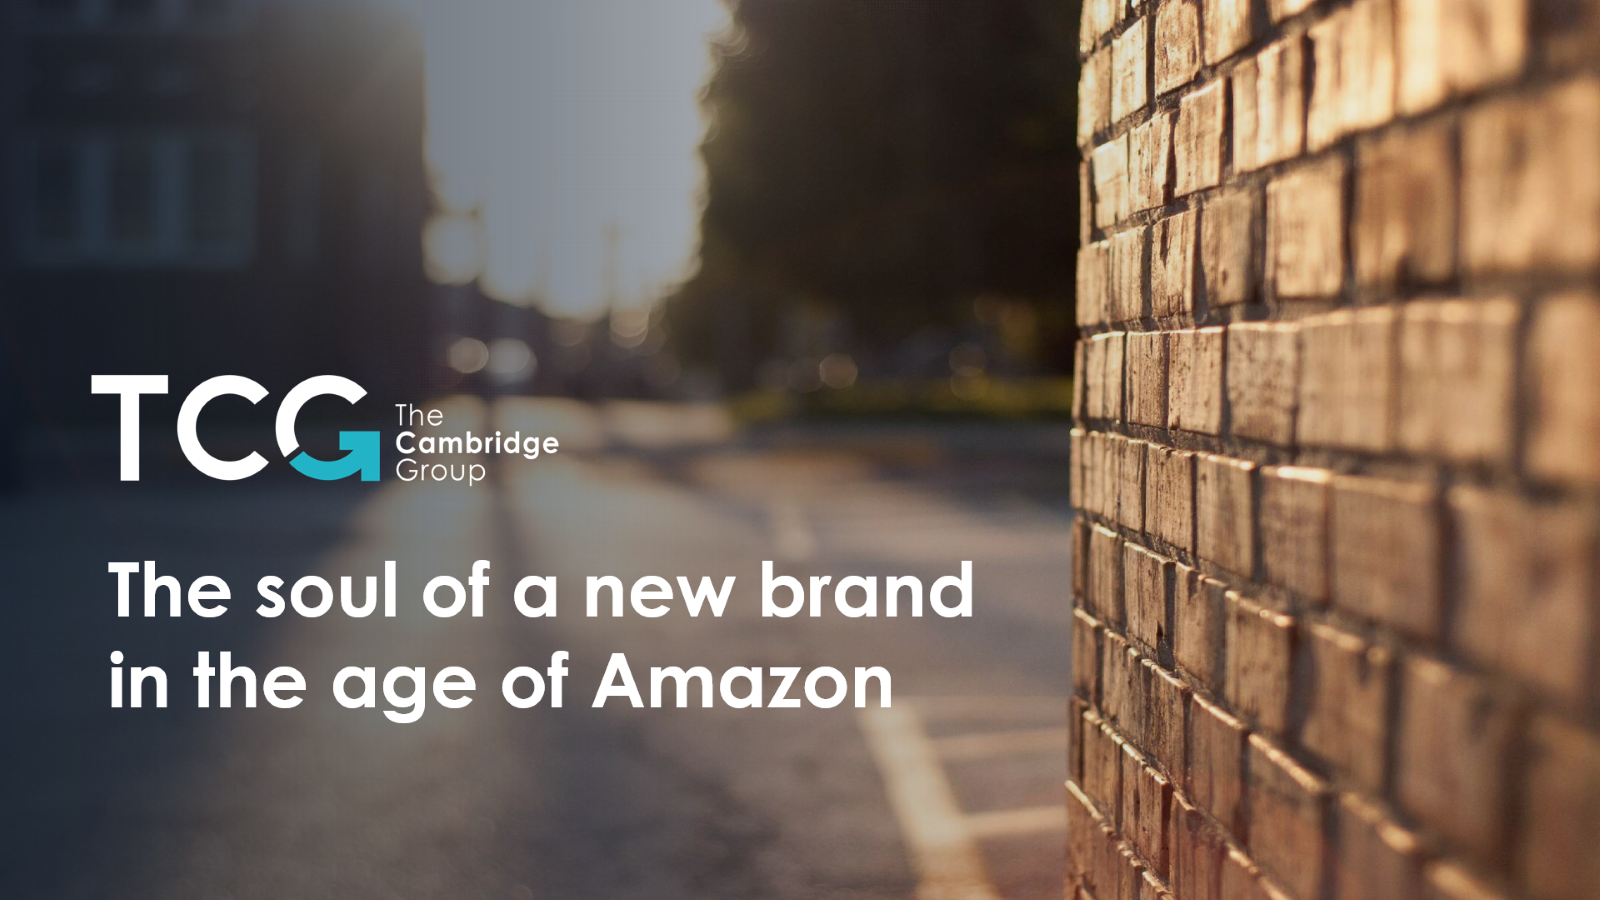 The soul of a new brand in the age of Amazon thumbnail